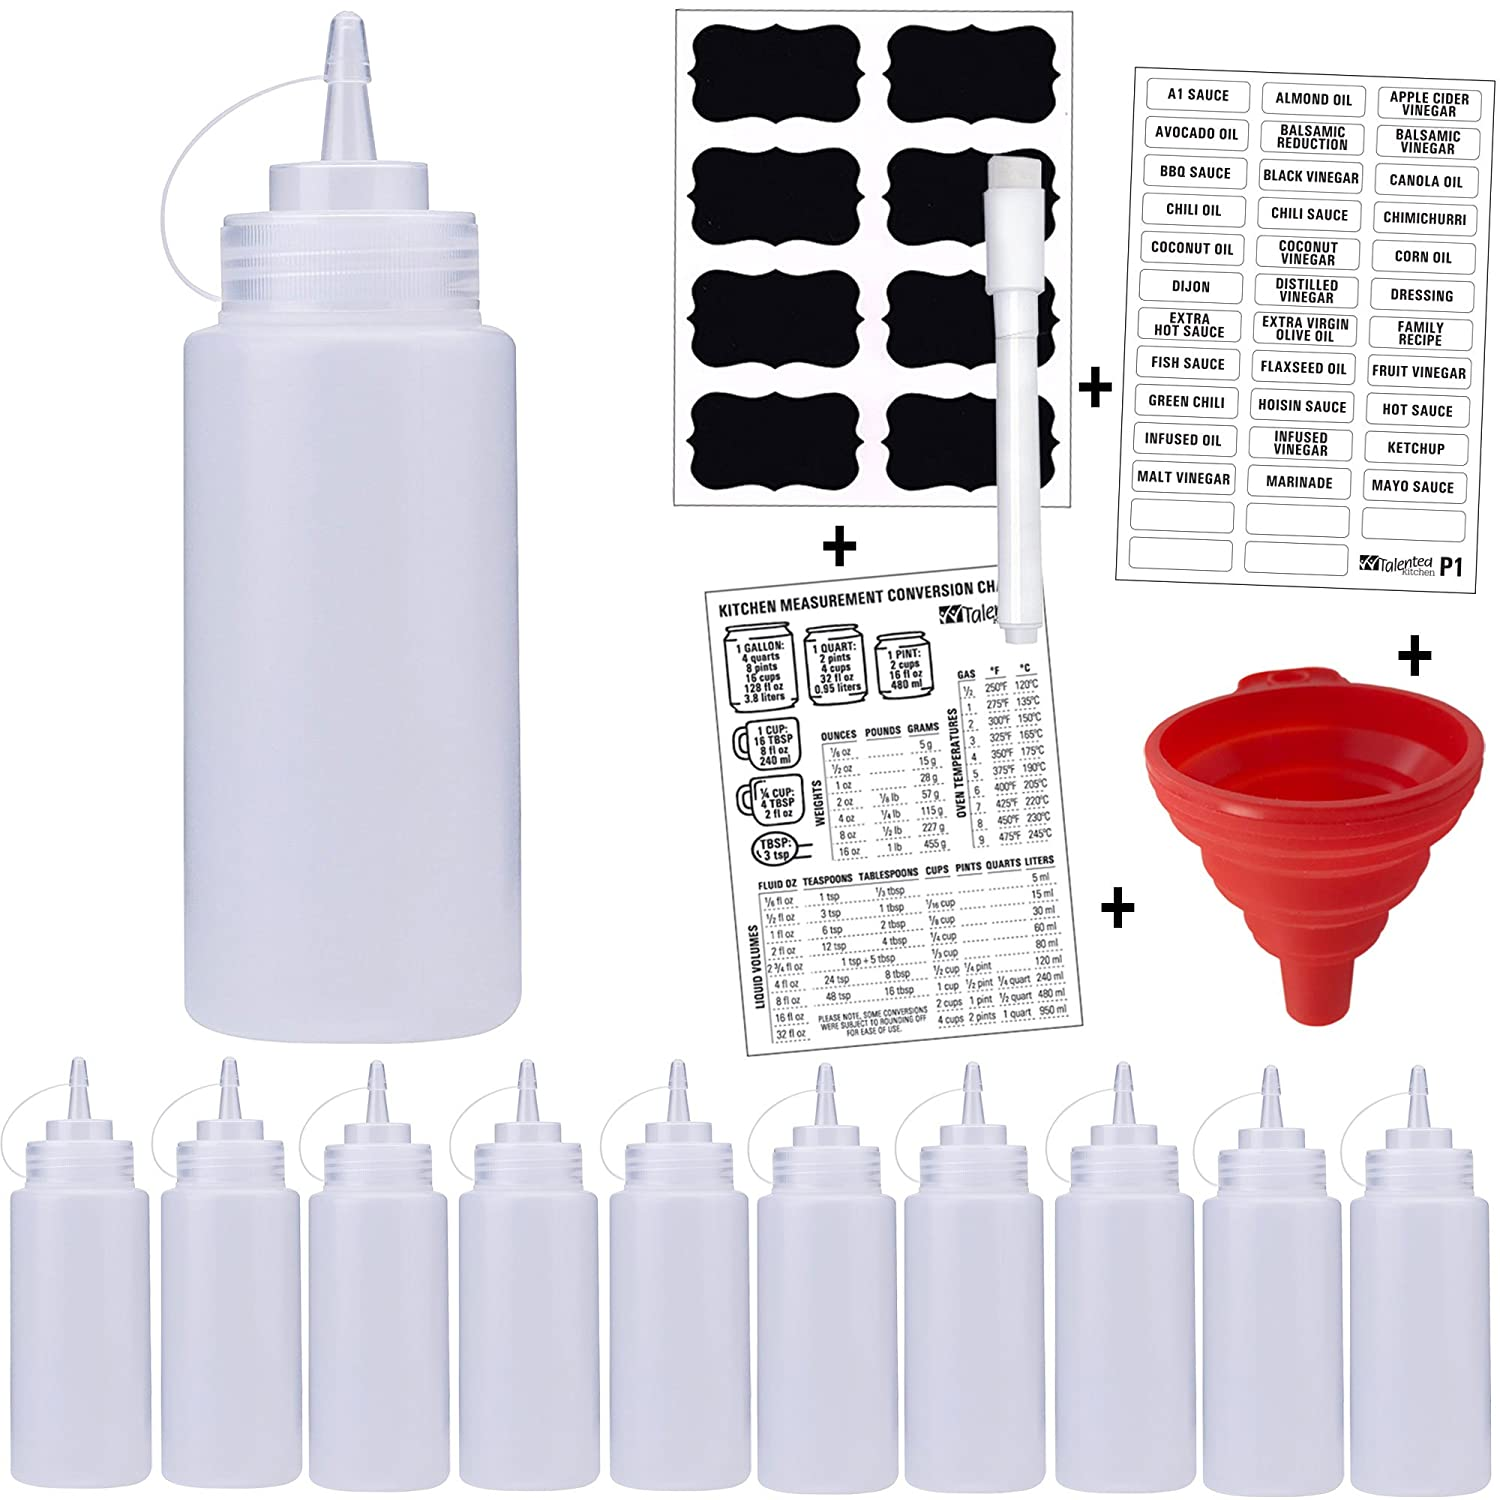 10-PACK Premium Plastic Squeeze Bottles, 16 Oz Condiment Squirt Bottles w/Caps. Complete Set by Talented Kitchen: Preprinted Labels & Chalkboard Labels, Marker, Funnel. Sauce Salad Dressings. BPA Free 10 16oz Squeeze Bottles